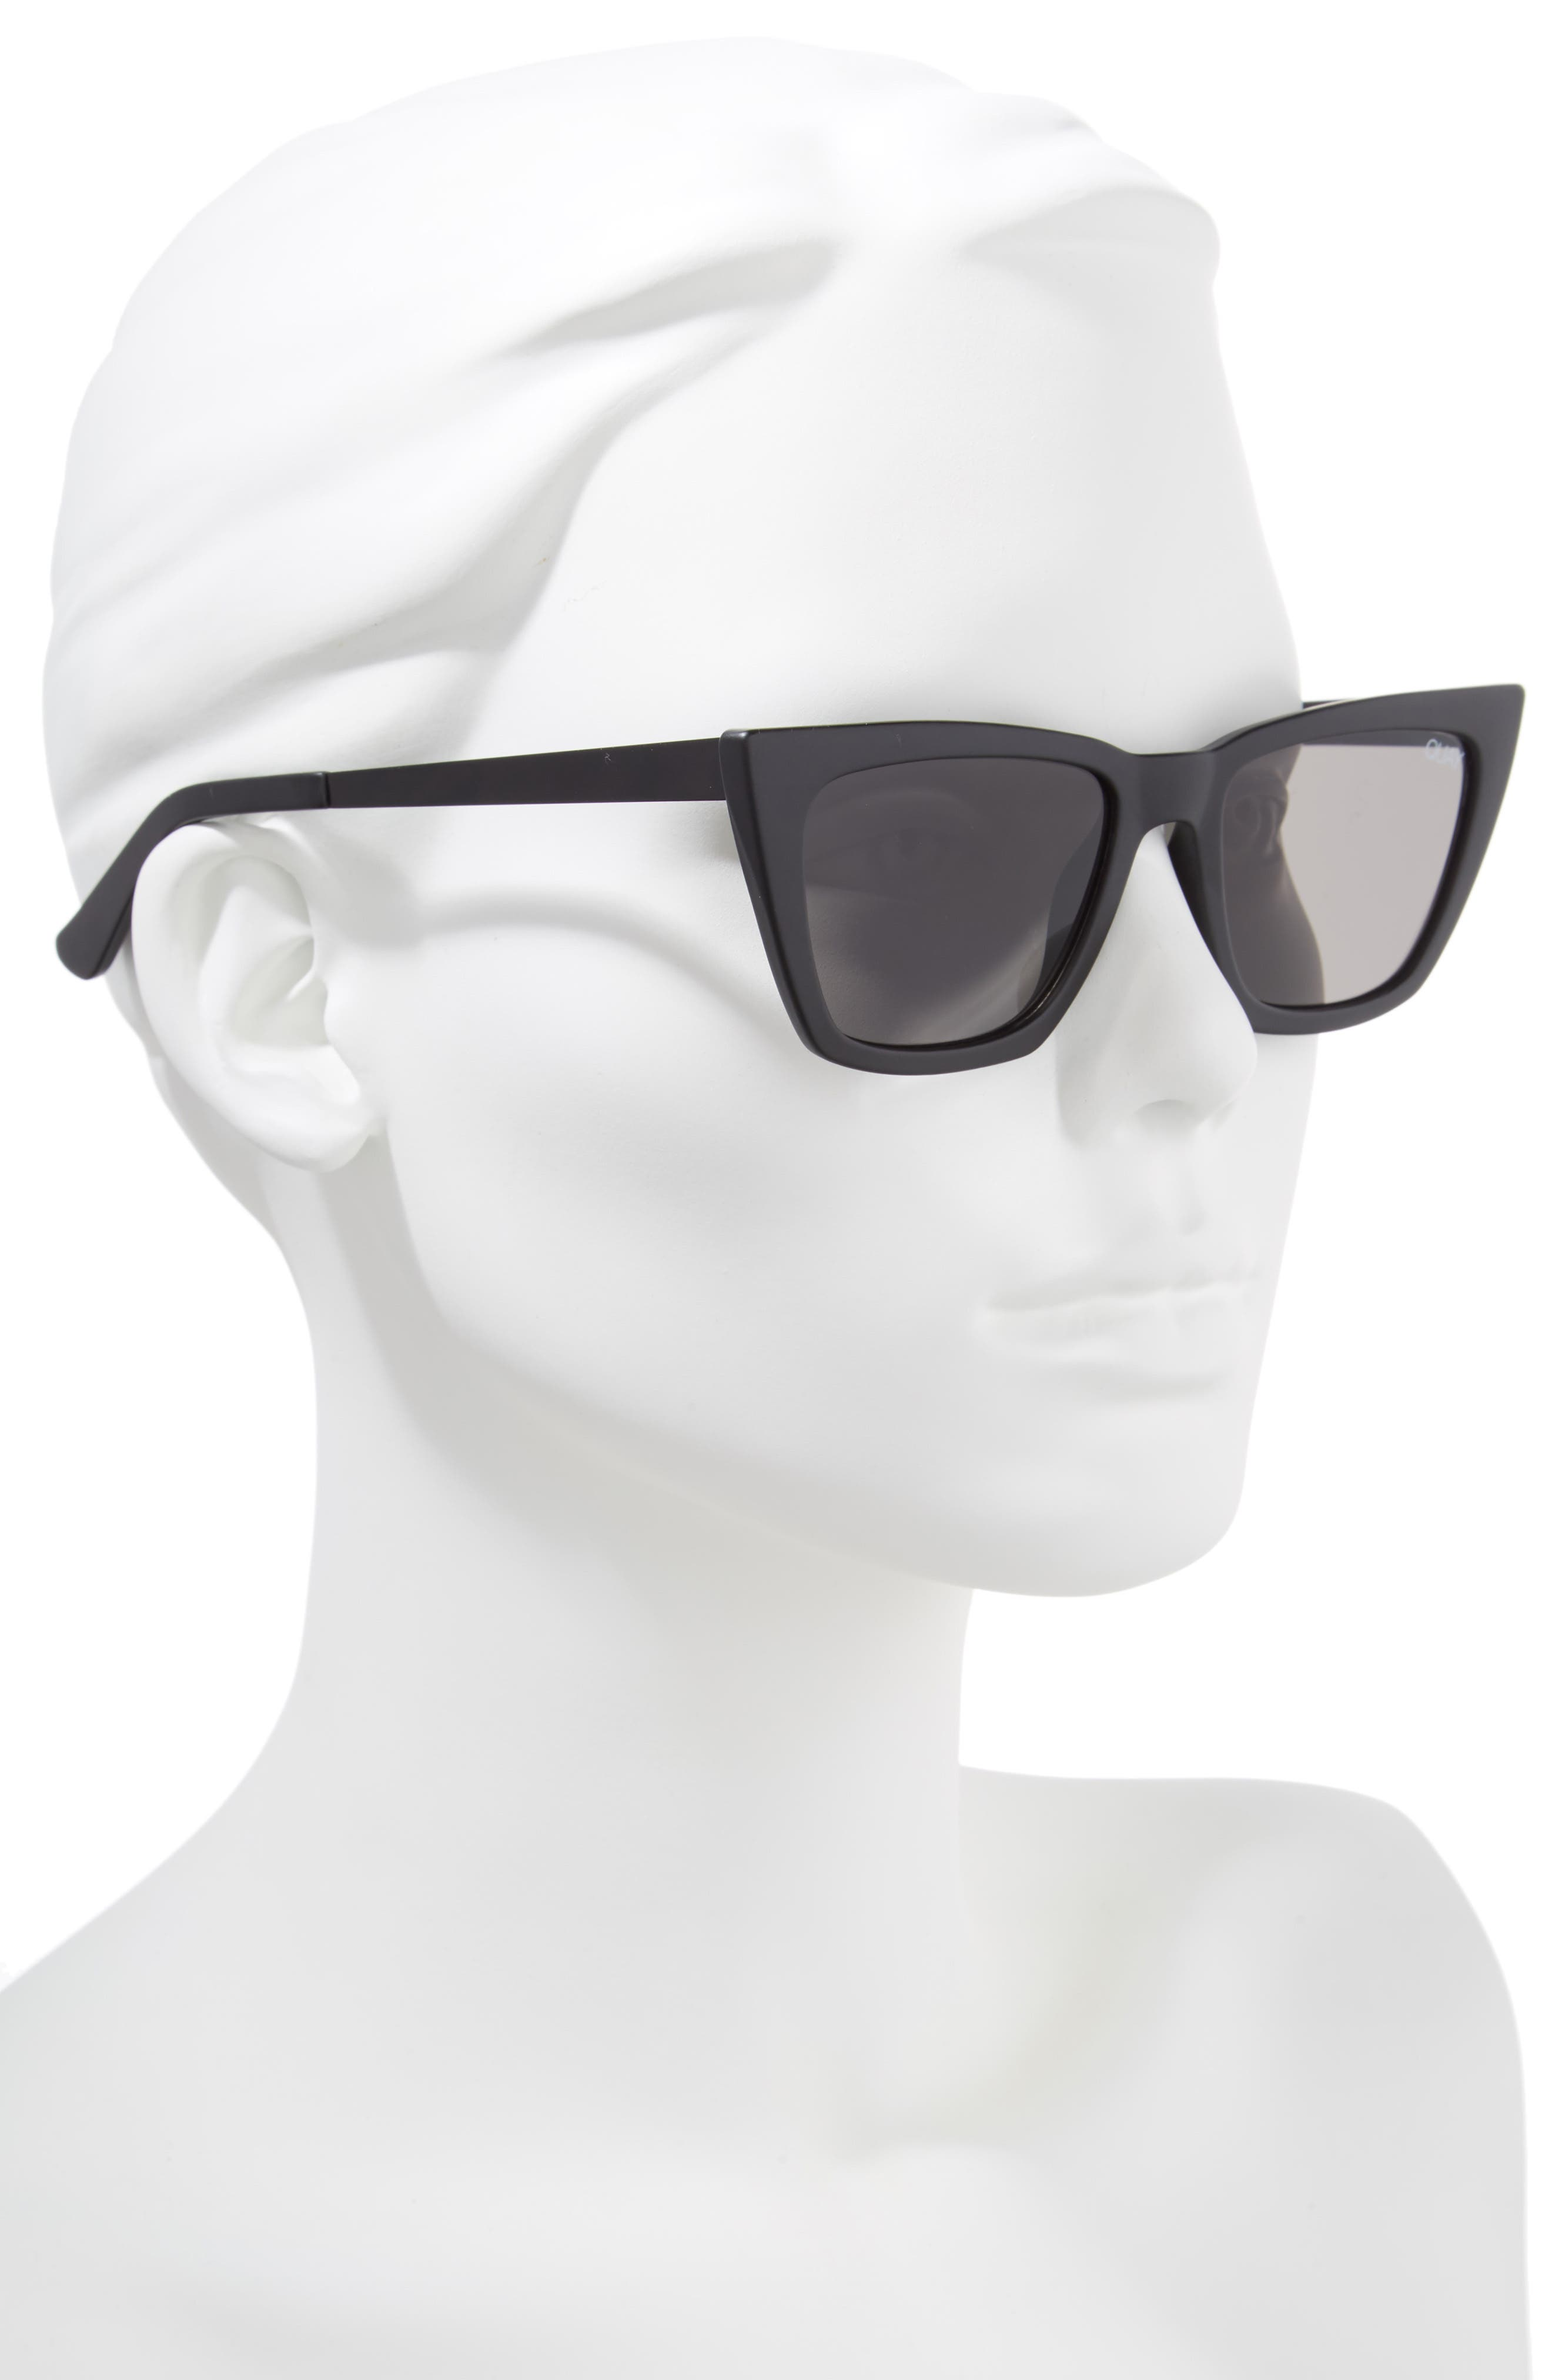 QUAY AUSTRALIA, x Desi Perkins Don't @ Me 48mm Cat Eye Sunglasses, Alternate thumbnail 2, color, BLACK/ SMOKE